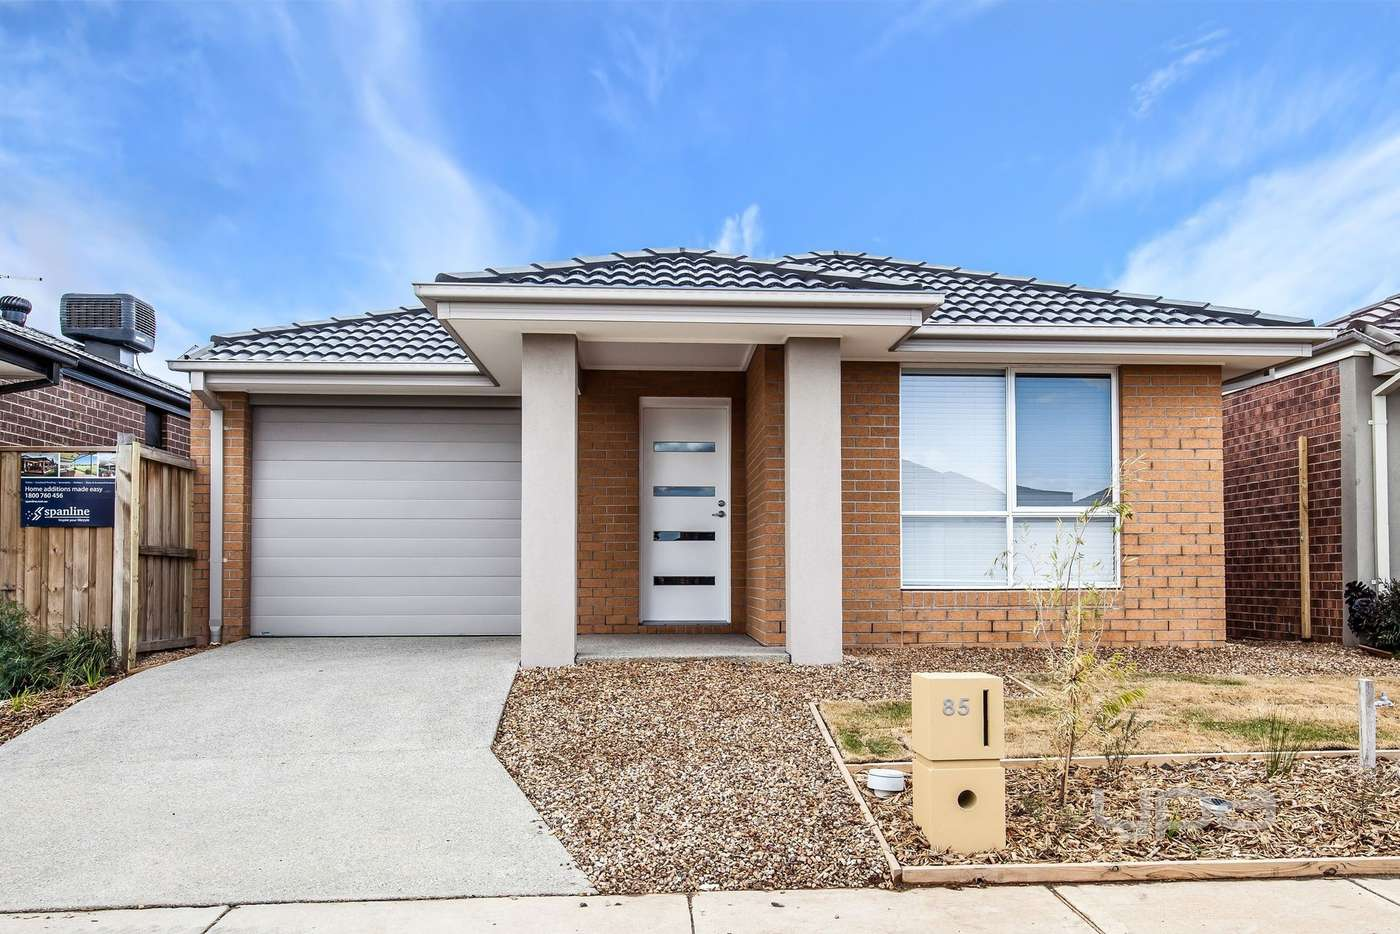 Main view of Homely house listing, 85 Anniversary Avenue, Wyndham Vale VIC 3024